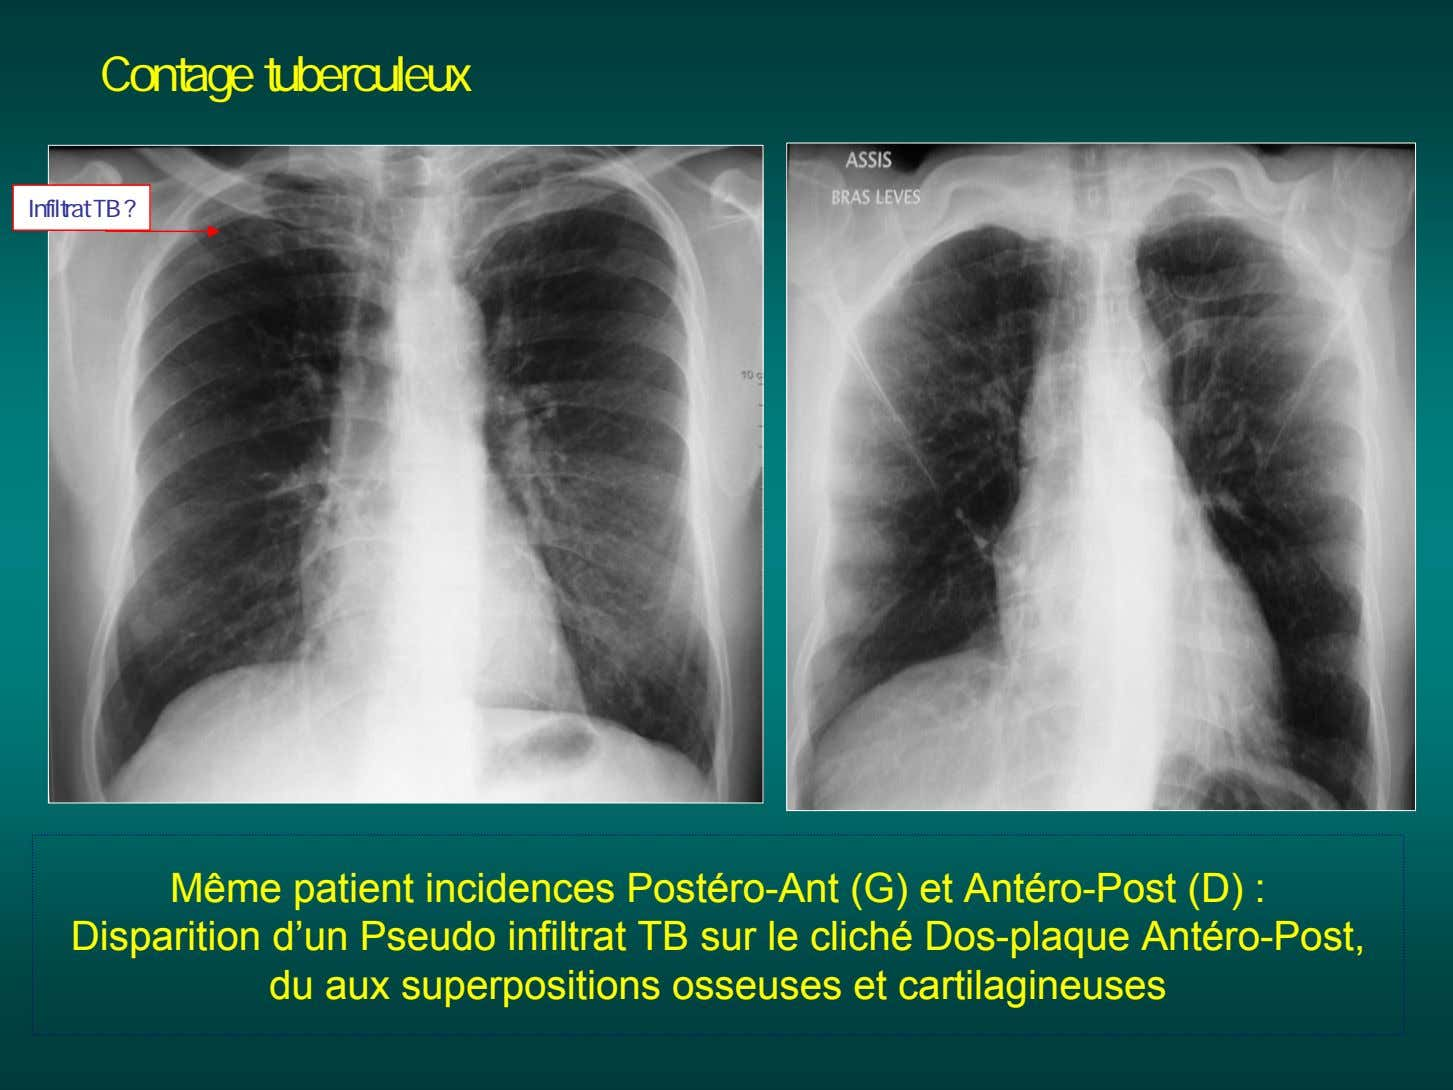 Contage tuberculeux Infiltrat TB ? Même patient incidences Postéro-Ant (G) et Antéro-Post (D) : Disparition